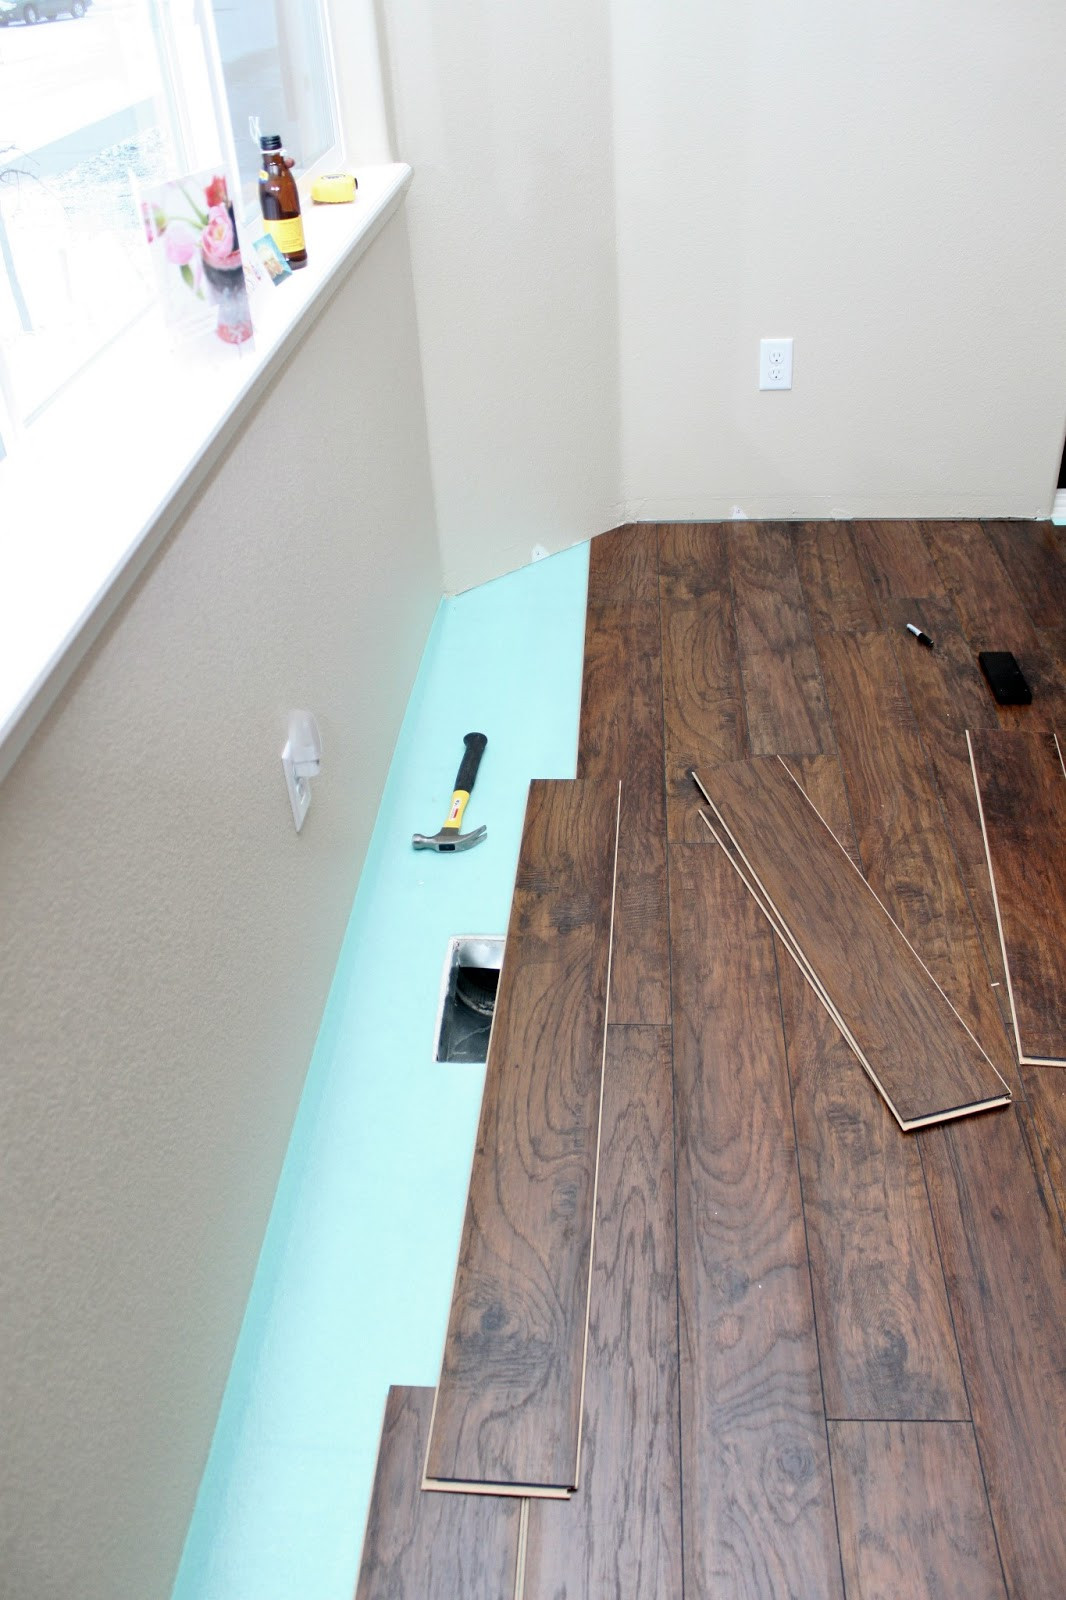 Best ideas about DIY Wood Floors . Save or Pin Our Modern Homestead DIY Laminate wood flooring project Now.